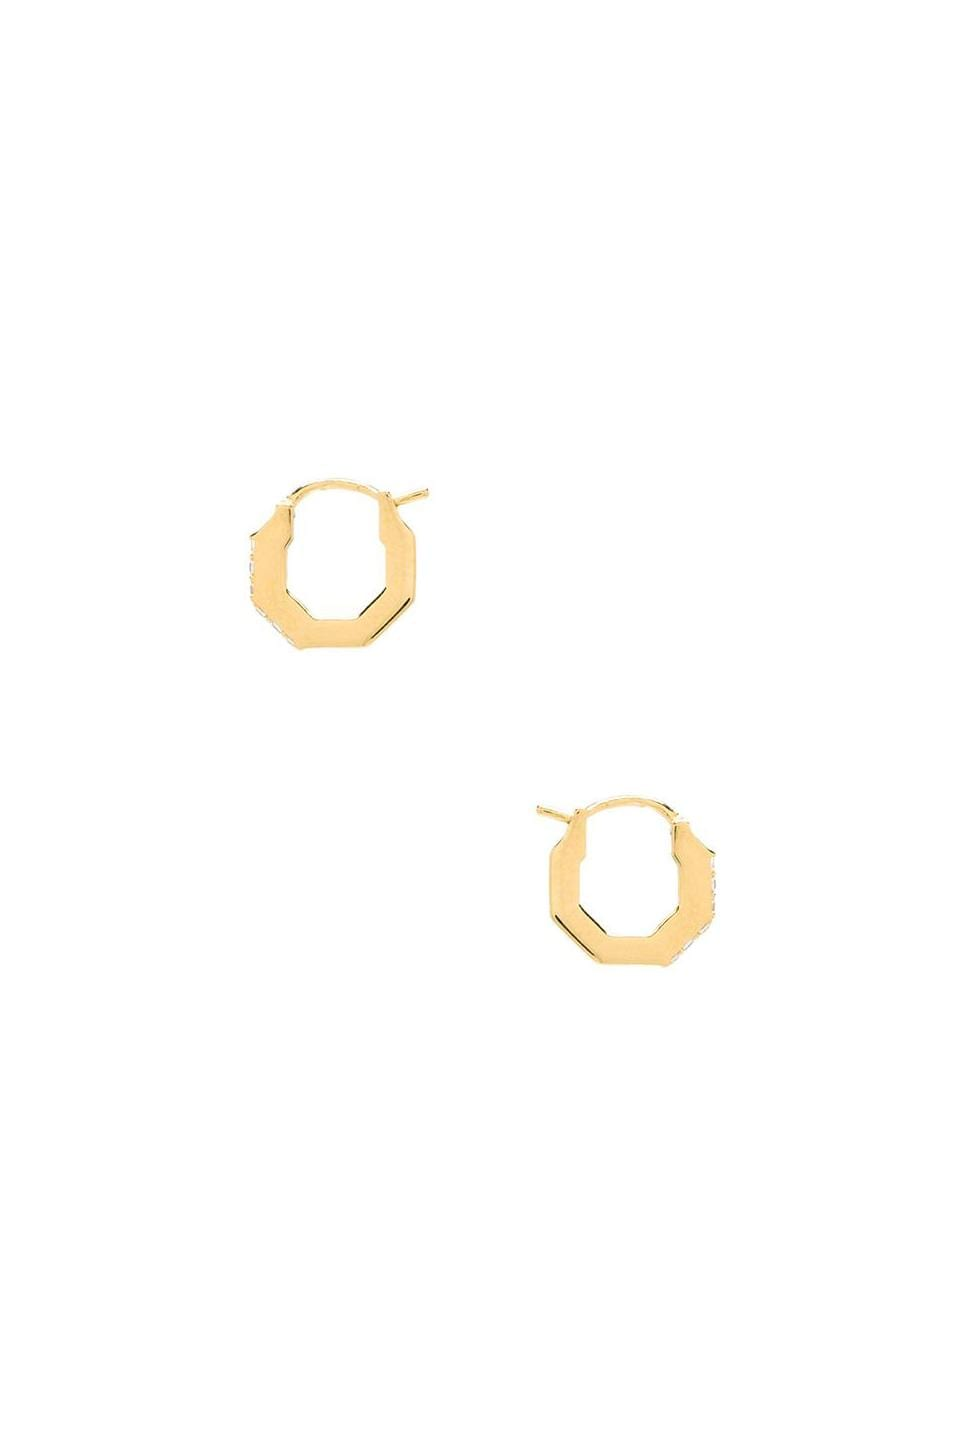 Elizabeth and James Small Victoria Hoop Earring in White Topaz